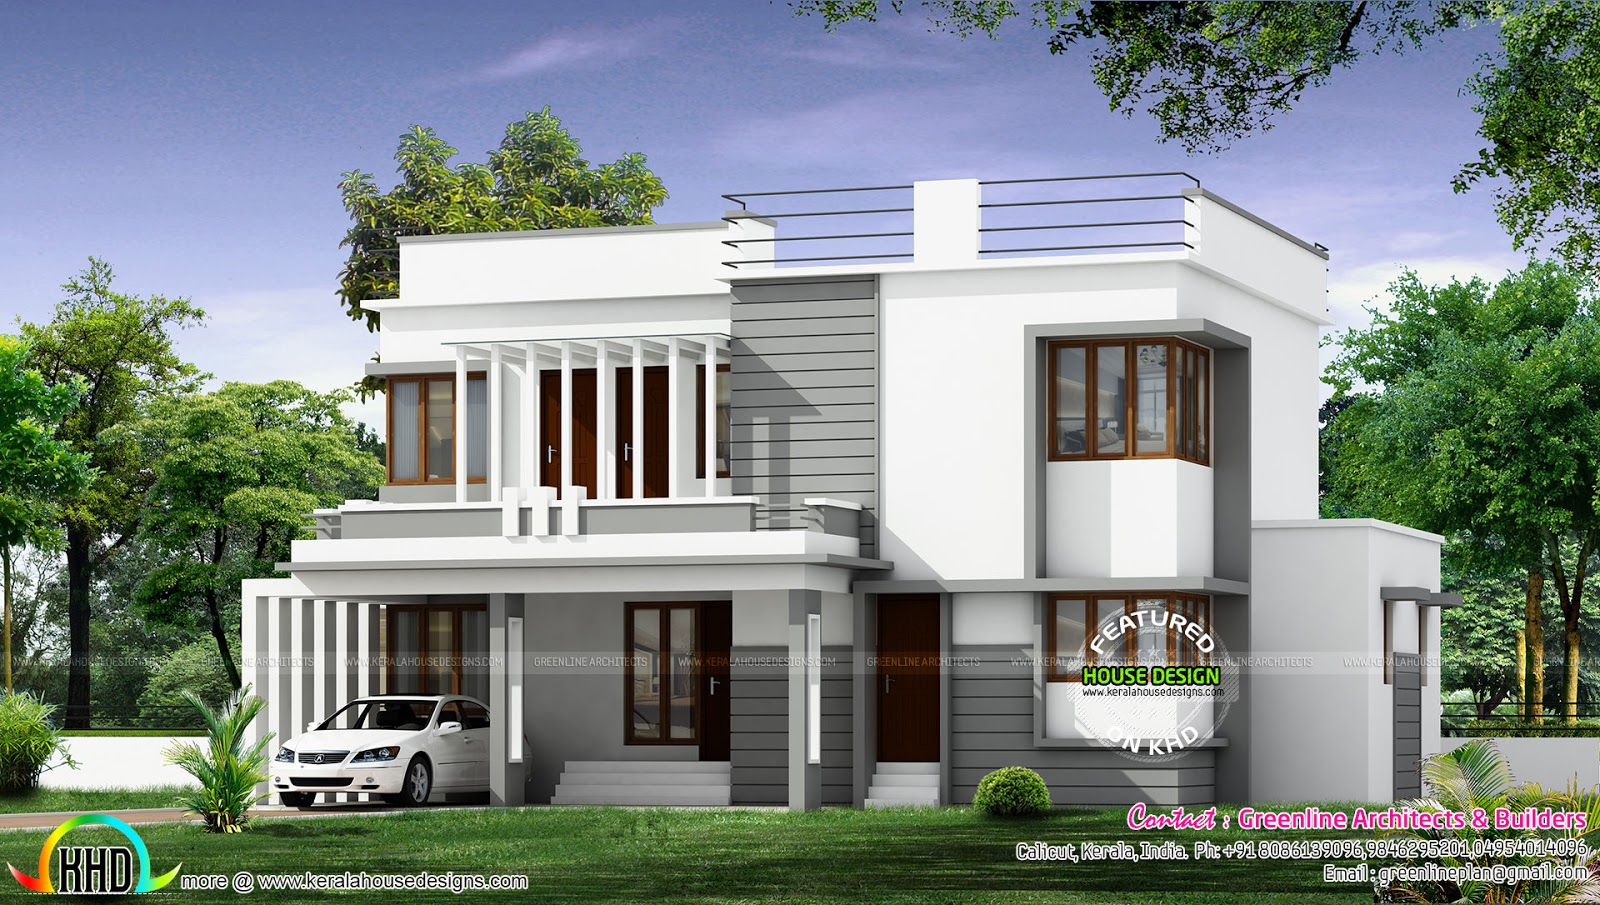 New modern house architecture kerala home design and for Latest house design 2016